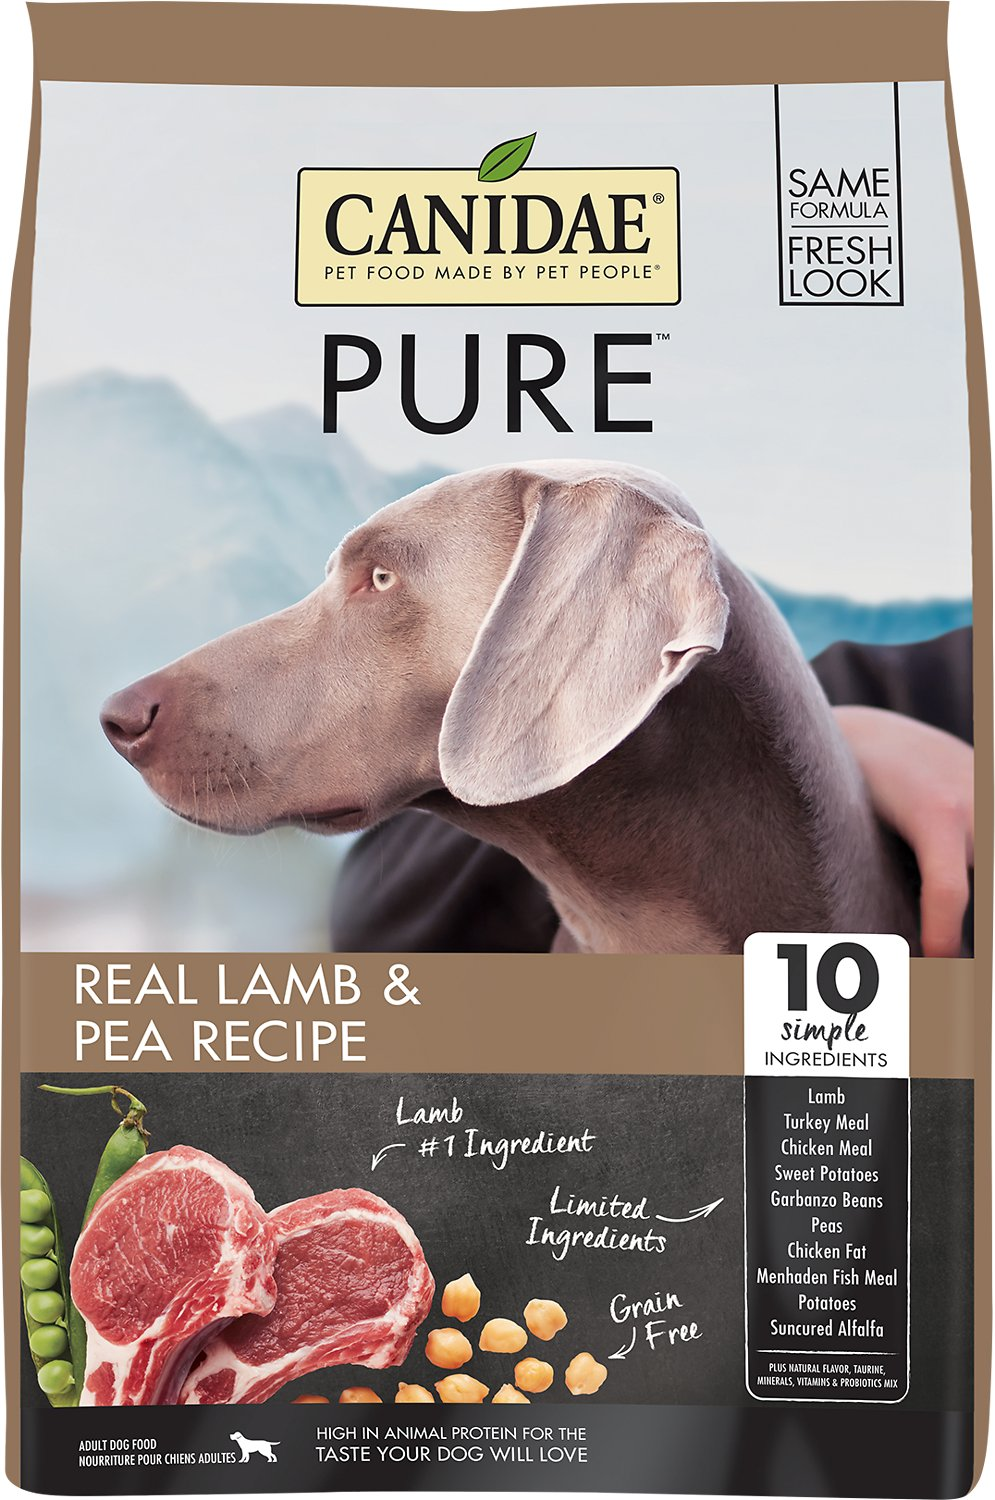 Canidae Grain-Free PURE Real Lamb & Pea Recipe Dry Dog Food Image